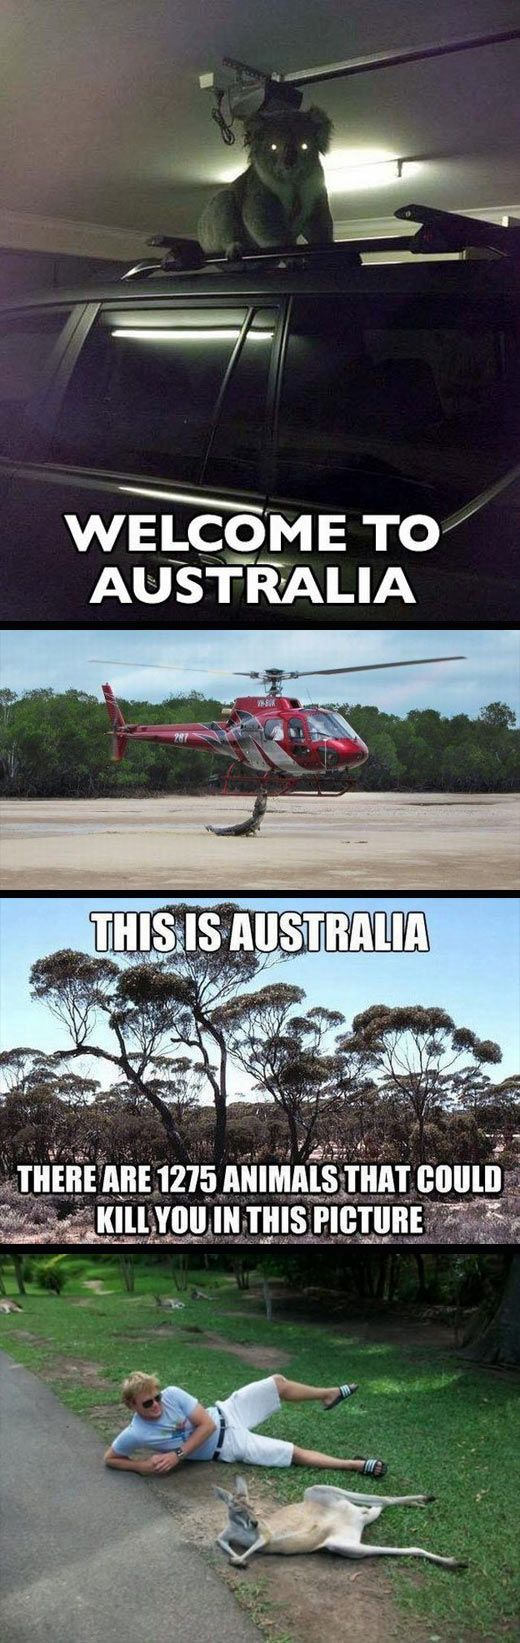 Things are a little different in Australia... - The Meta Picture - ✮ www.pinterest.com/WhoLoves/Australia ✮ #Australia